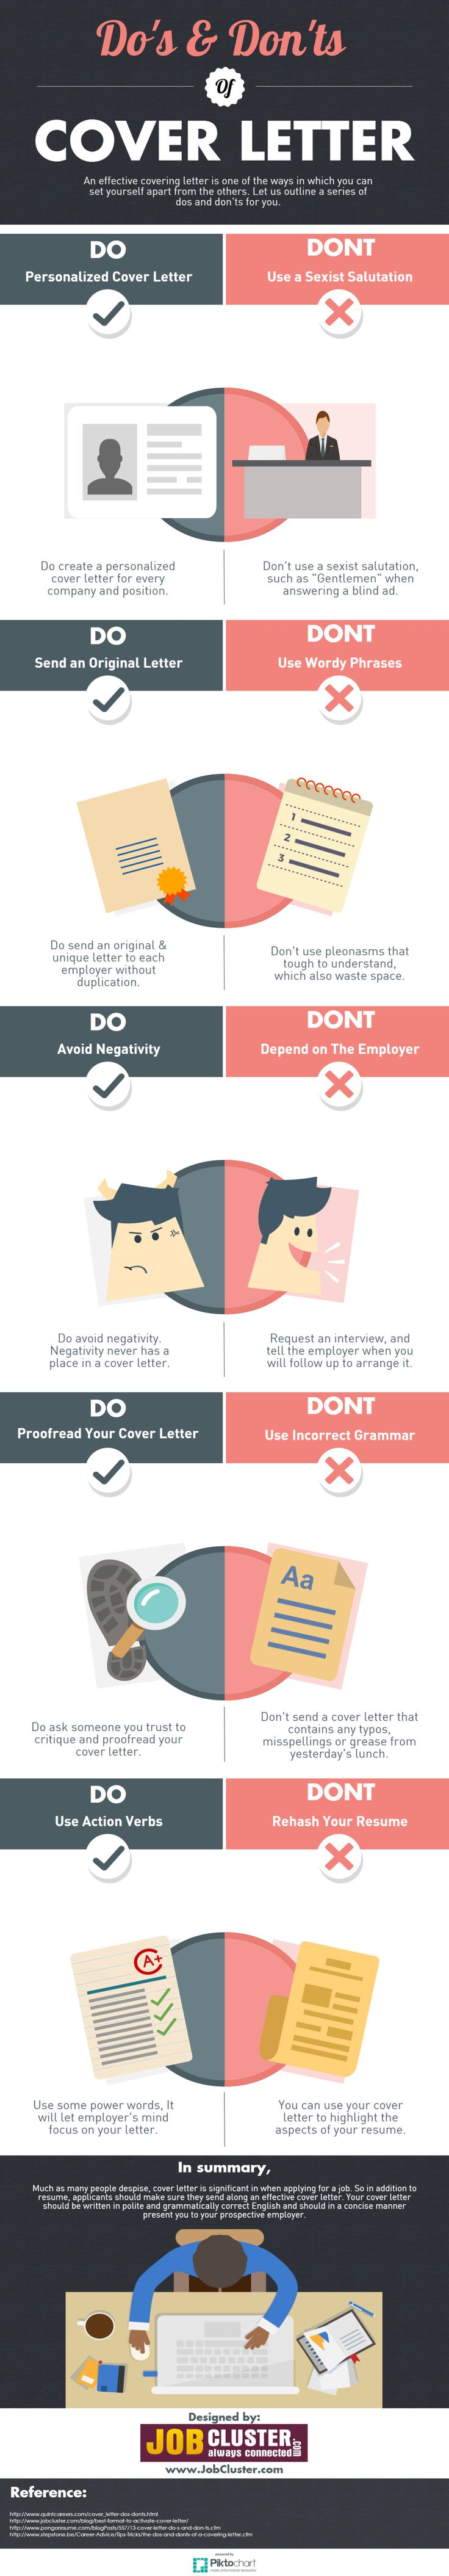 Infographic cover letter do 39 s and don 39 ts for job seekers for Do i bring a cover letter to an interview